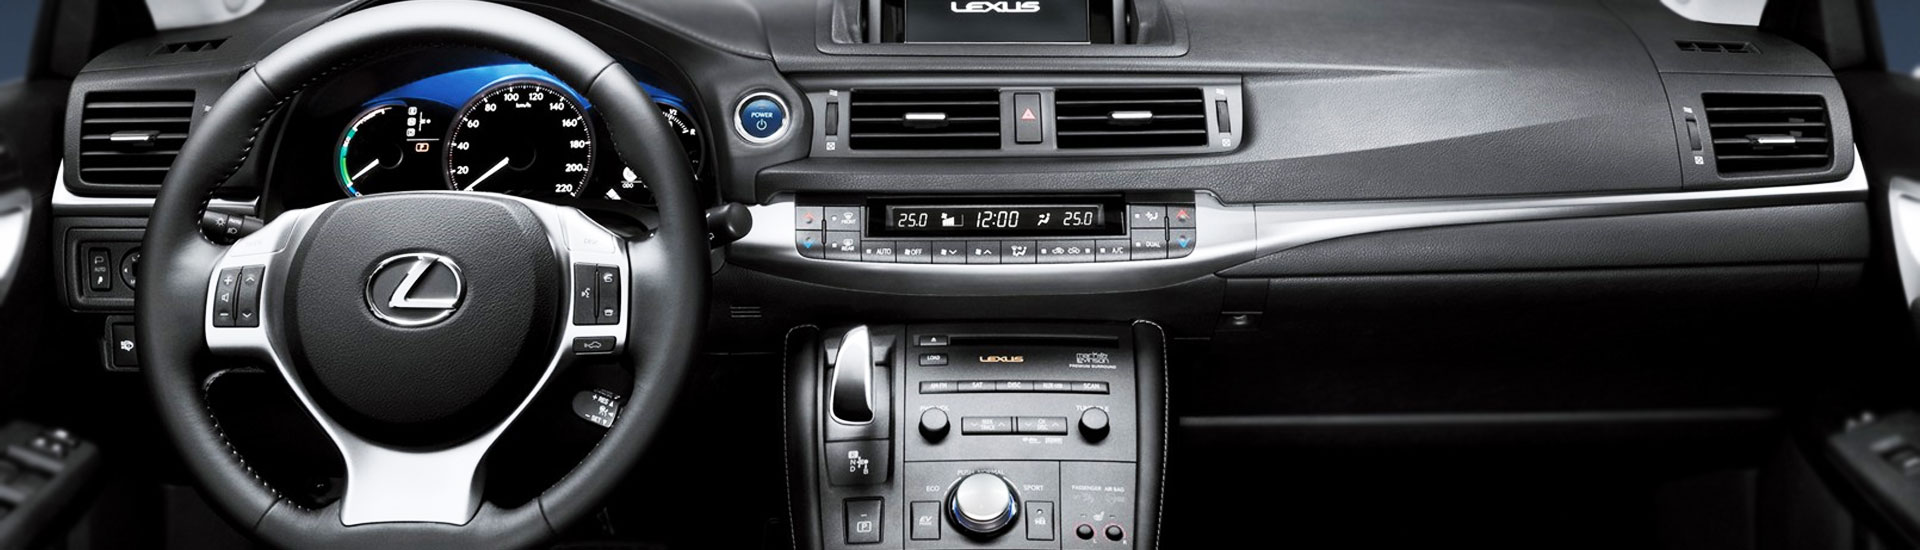 Lexus HS Custom Dash Kits